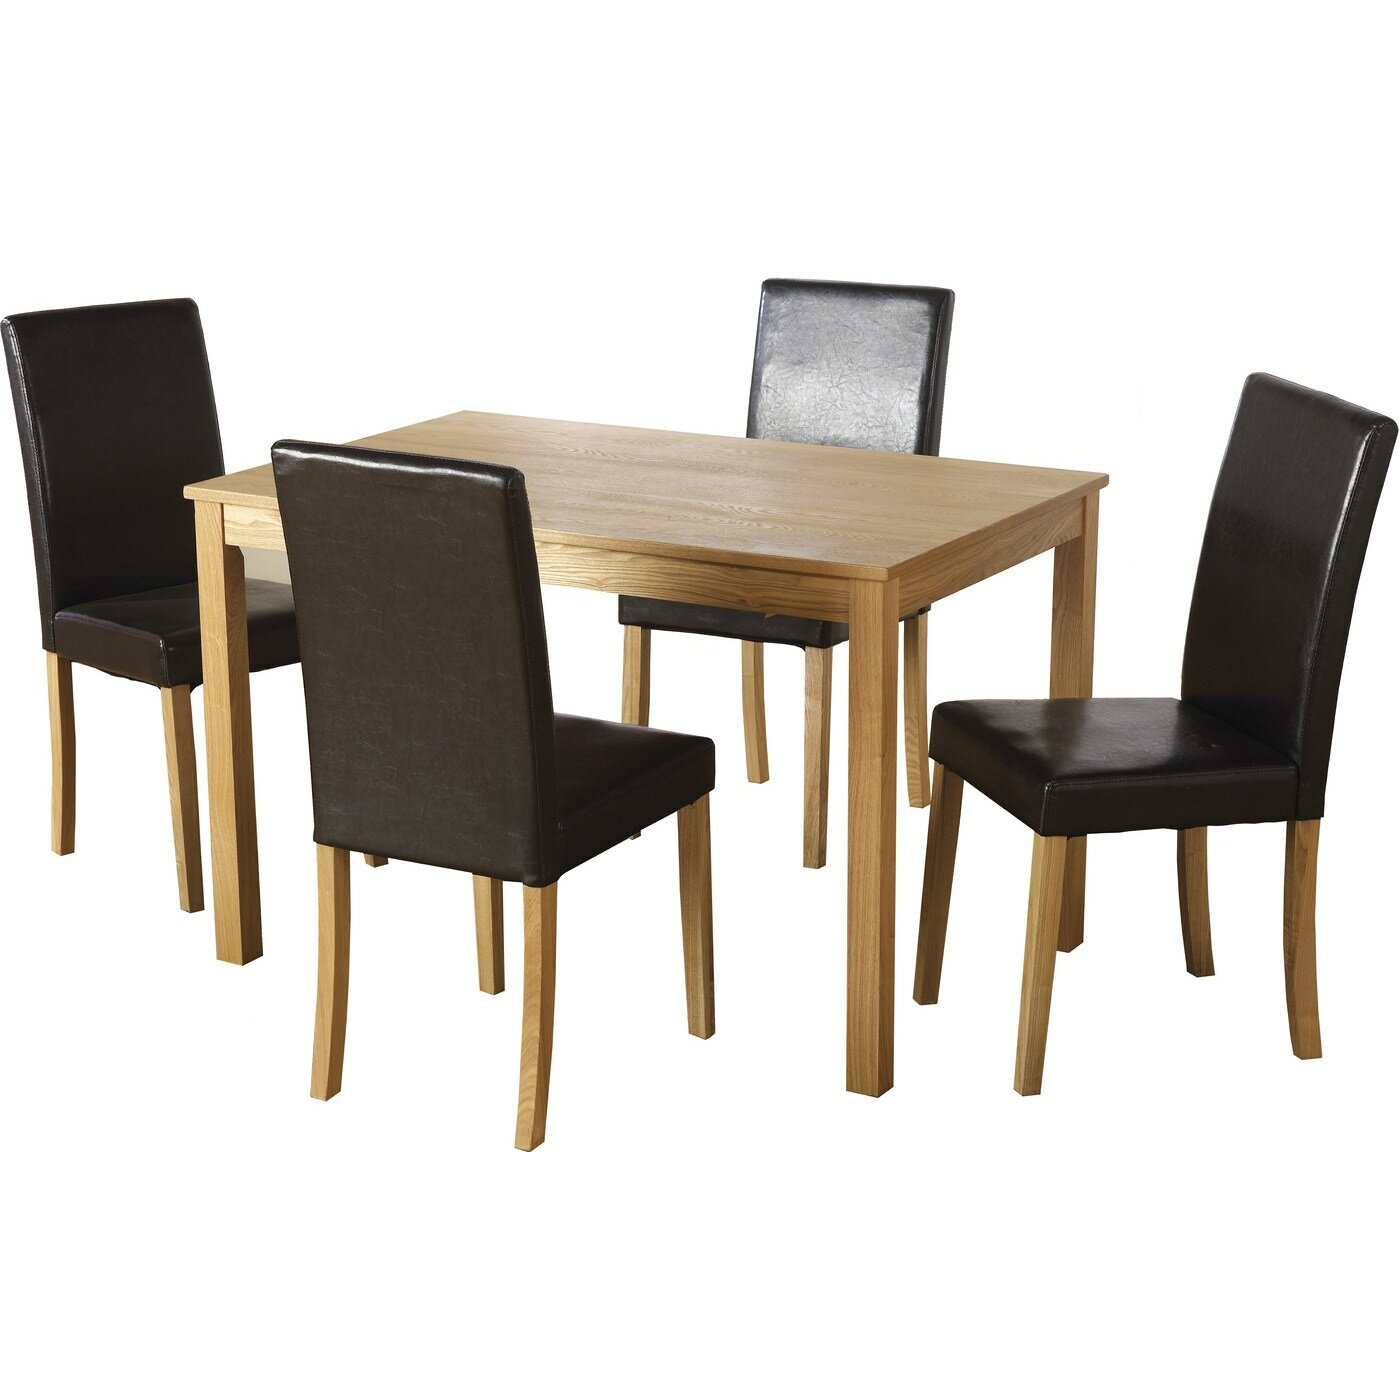 Anns dining table and 4 chairs wayfair uk for 4 chair dining table